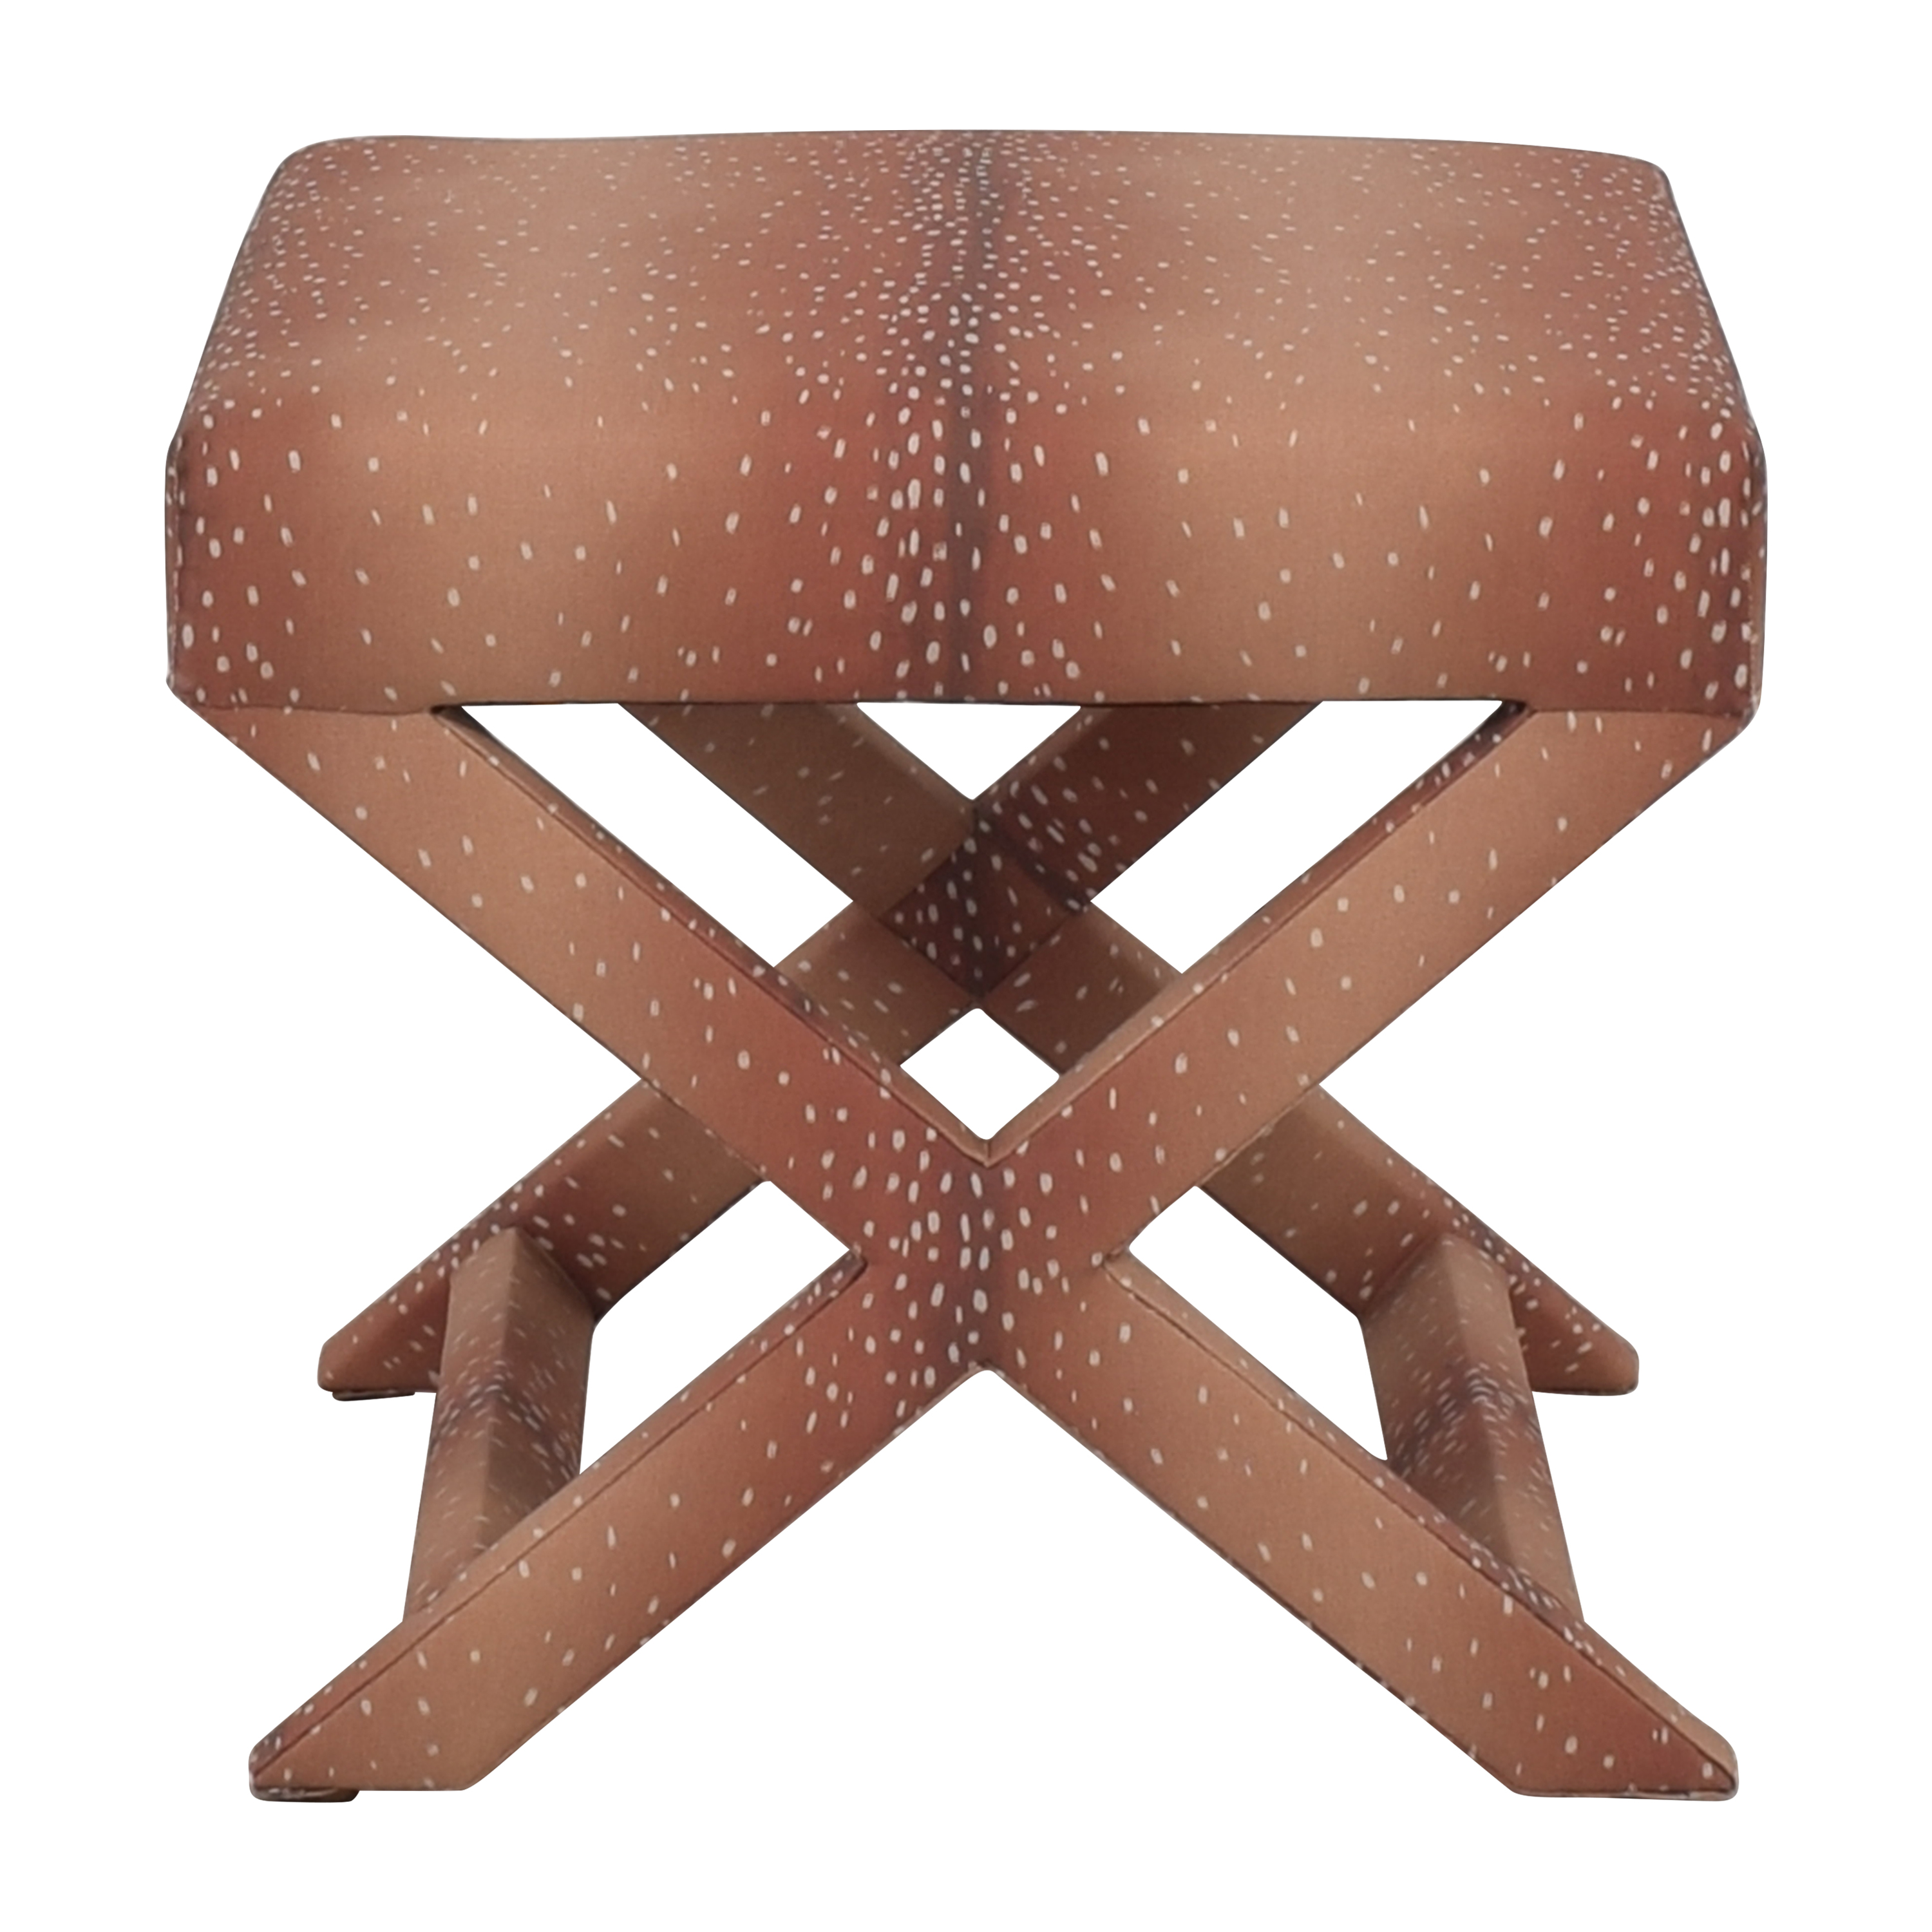 buy The Inside X Bench The Inside Stools